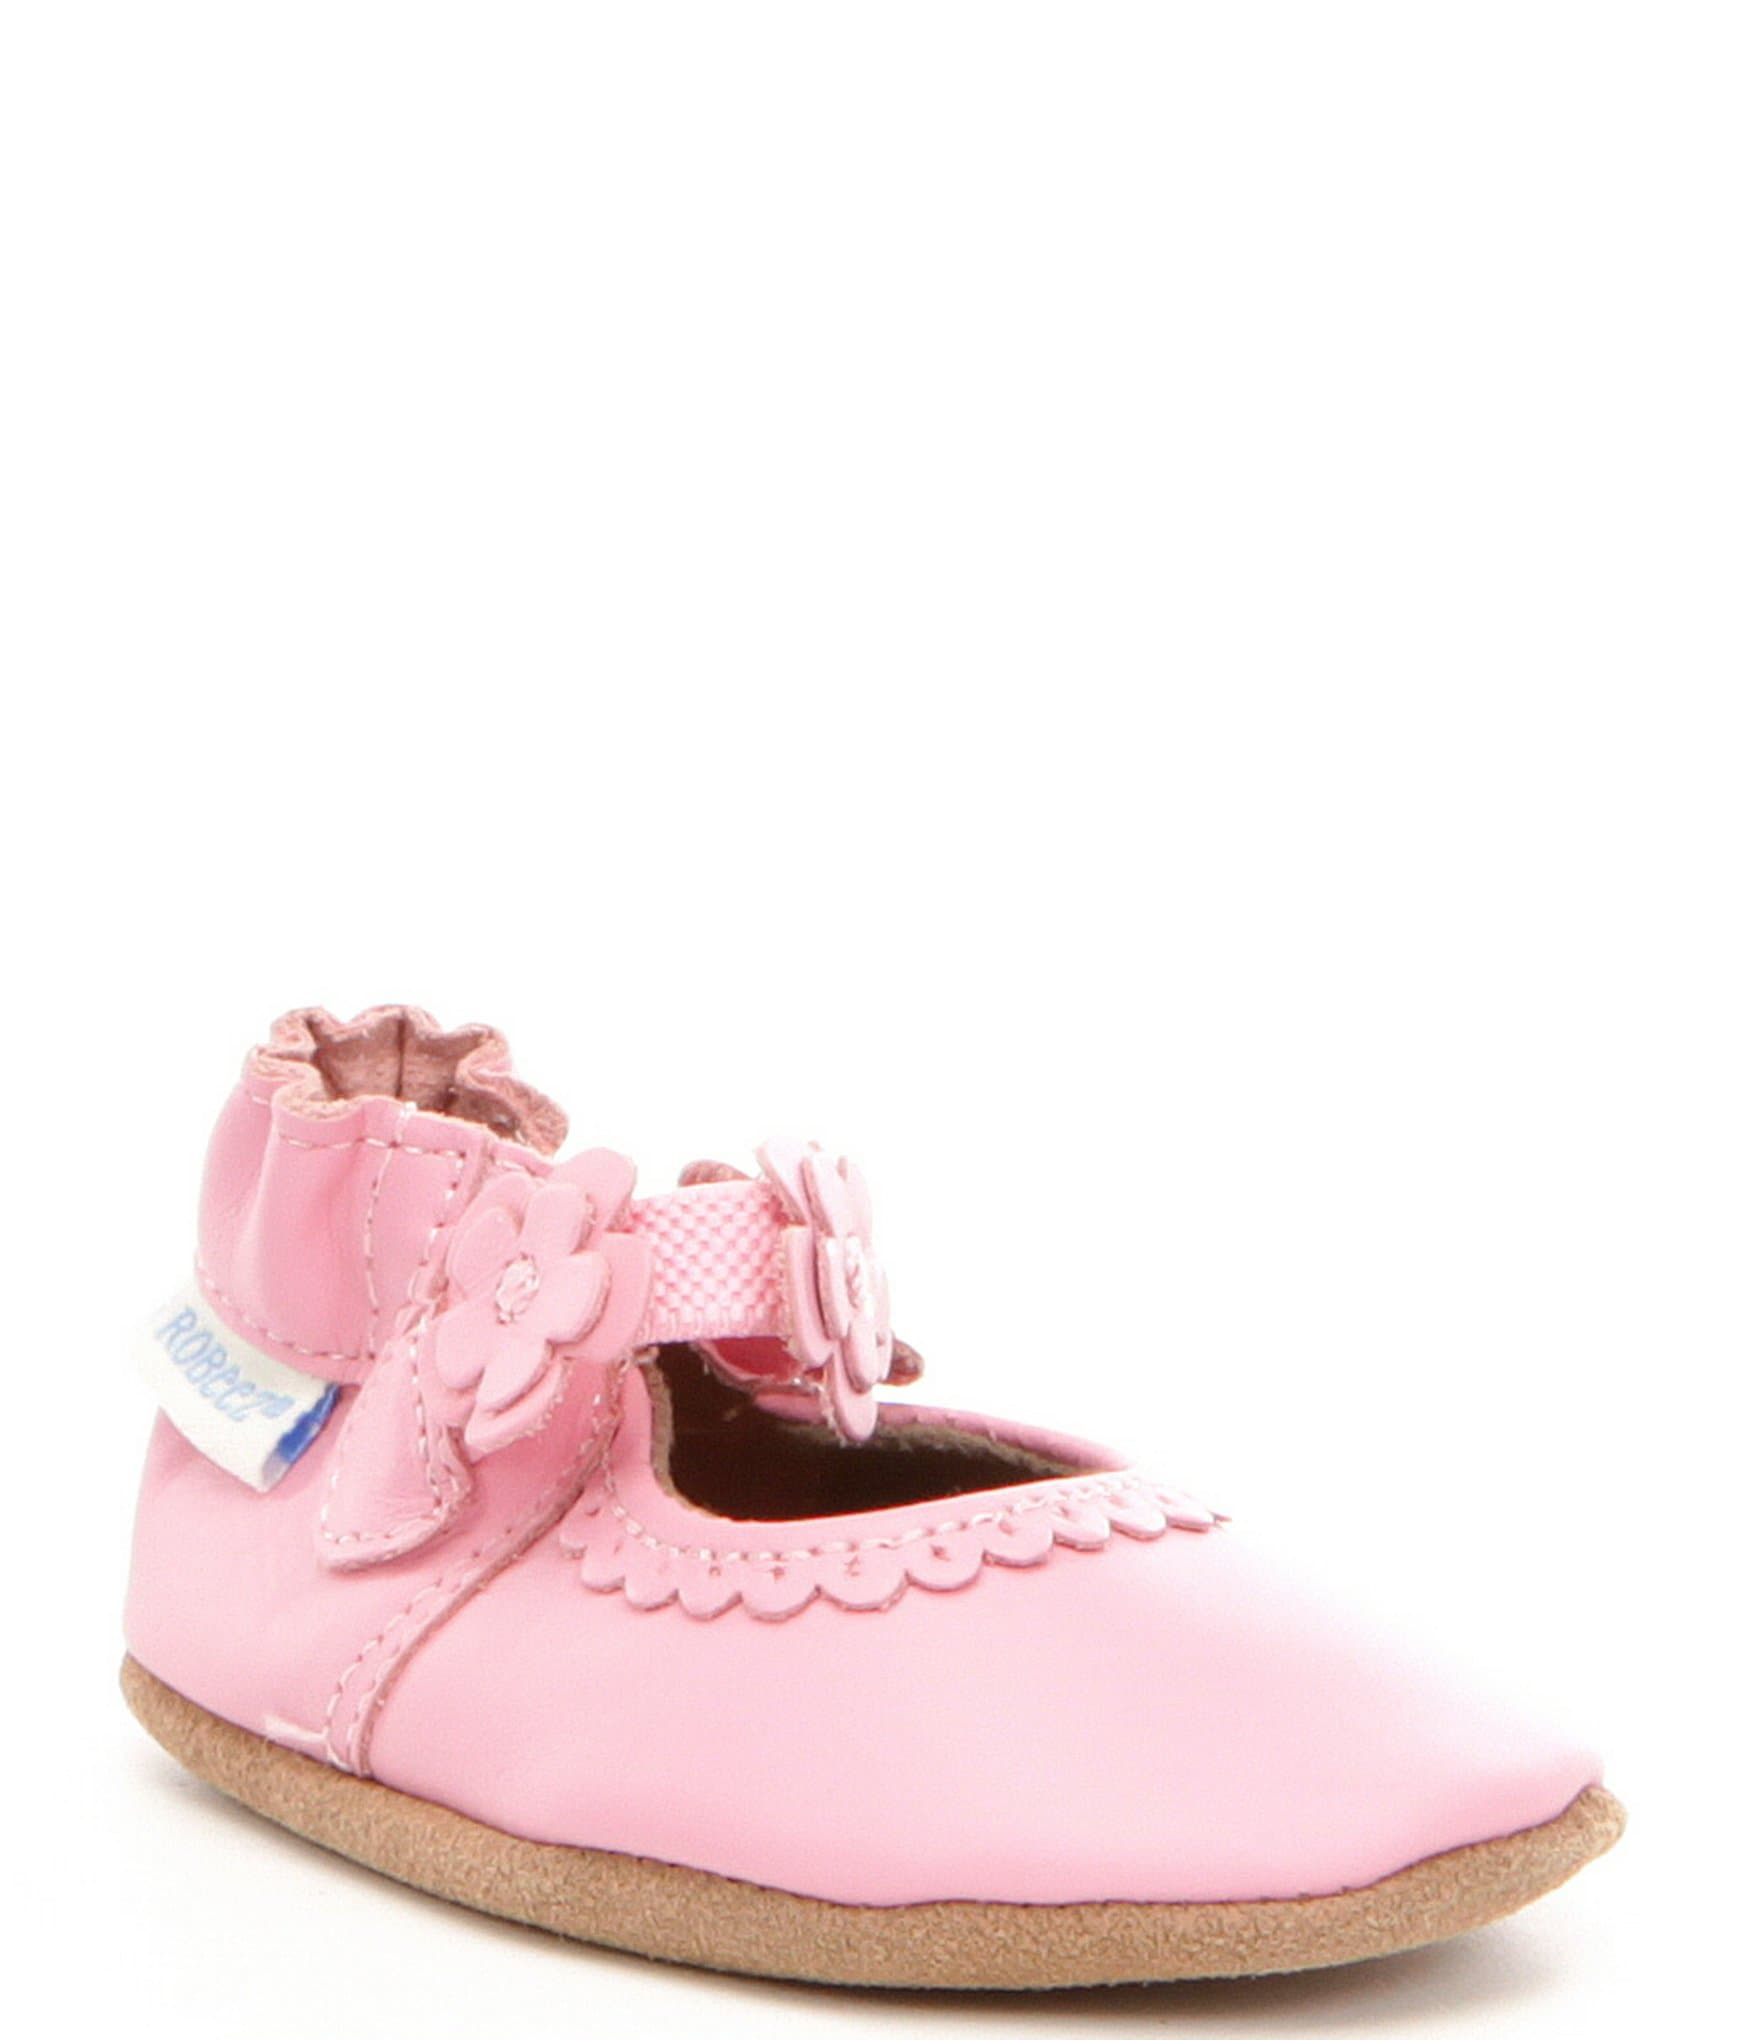 Robeez Baby Shoes Clearance